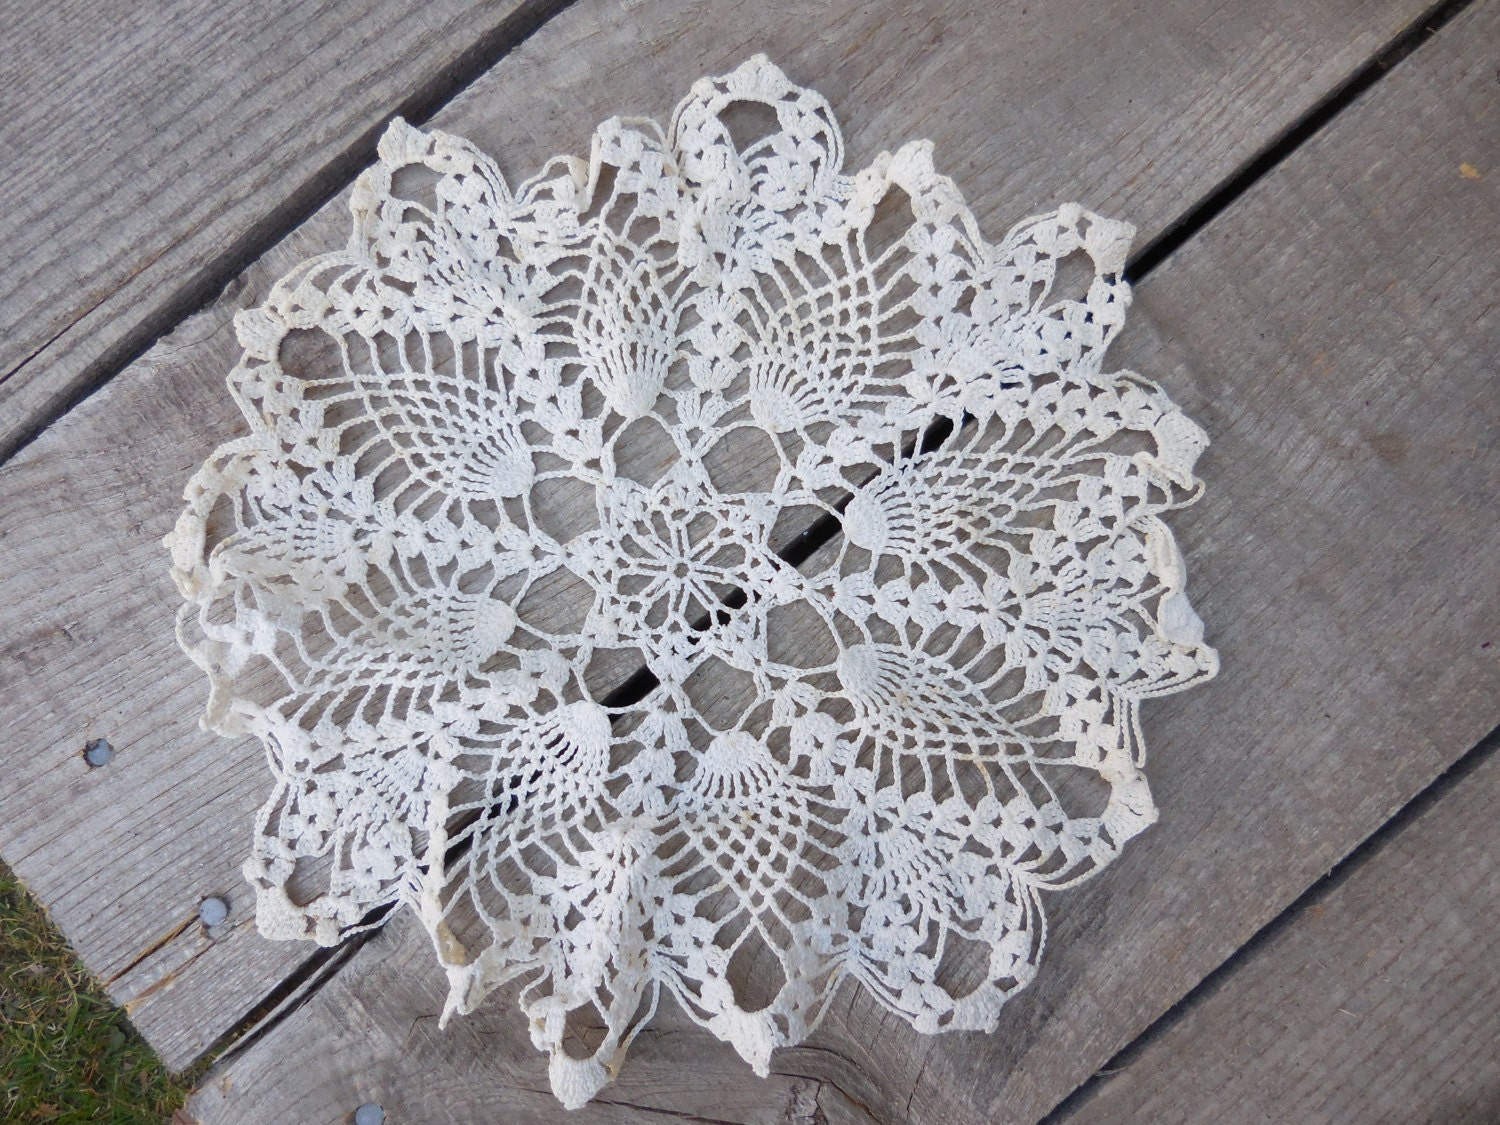 Vintage Round White Crocheted Doily 1950s To 1960s Furniture